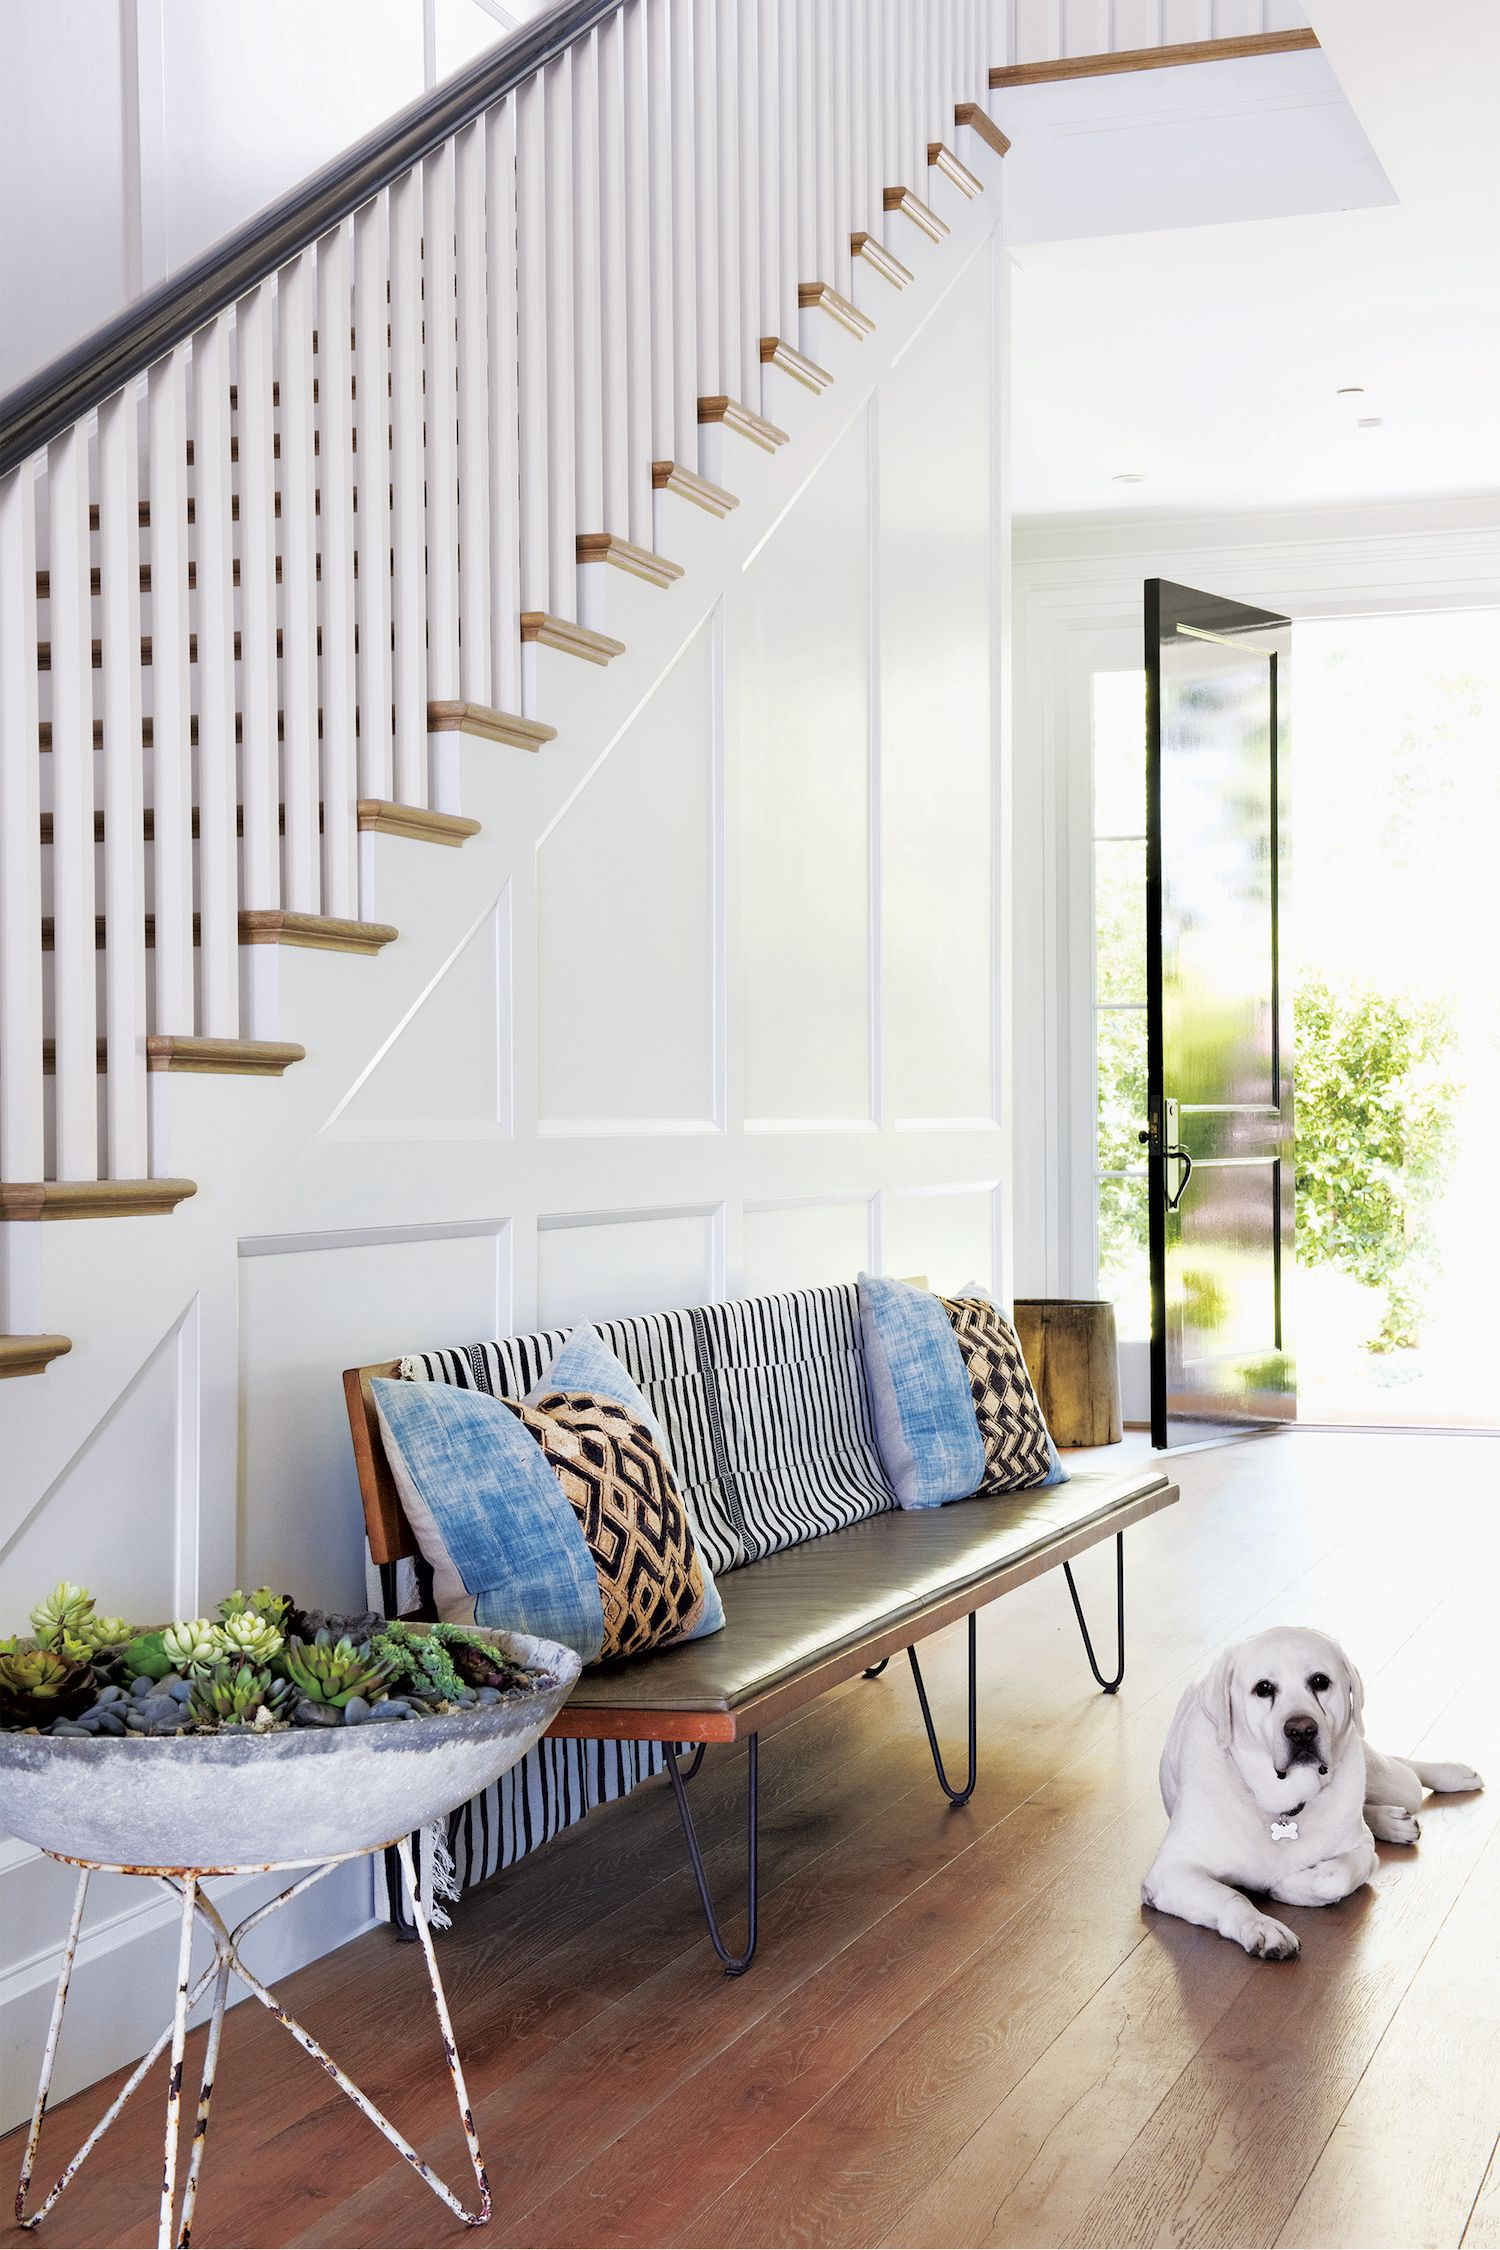 """<p>In place of a side table, accent an entryway with low-maintenance greenery like succulents in a pretty pot or raised planter.</p><p><em data-redactor-tag=""""em"""" data-verified=""""redactor"""">JF Chen <strong data-redactor-tag=""""strong"""" data-verified=""""redactor"""">bench,</strong> <a href=""""http://www.jfchen.com"""" target=""""_blank"""" data-tracking-id=""""recirc-text-link"""">jfchen.com</a>. Plant <strong data-redactor-tag=""""strong"""" data-verified=""""redactor"""">stand,</strong> <a href=""""http://www.orangefurniture.com"""" target=""""_blank"""" data-tracking-id=""""recirc-text-link"""">orangefurniture.com</a>. For similar: Happy Habitat cotton <strong data-redactor-tag=""""strong"""" data-verified=""""redactor"""">throw,</strong> $160, <a href=""""http://www.westelm.com"""" target=""""_blank"""" data-tracking-id=""""recirc-text-link"""">westelm.com</a>.</em><span class=""""redactor-invisible-space""""><em data-redactor-tag=""""em"""" data-verified=""""redactor""""></em></span><br></p>"""